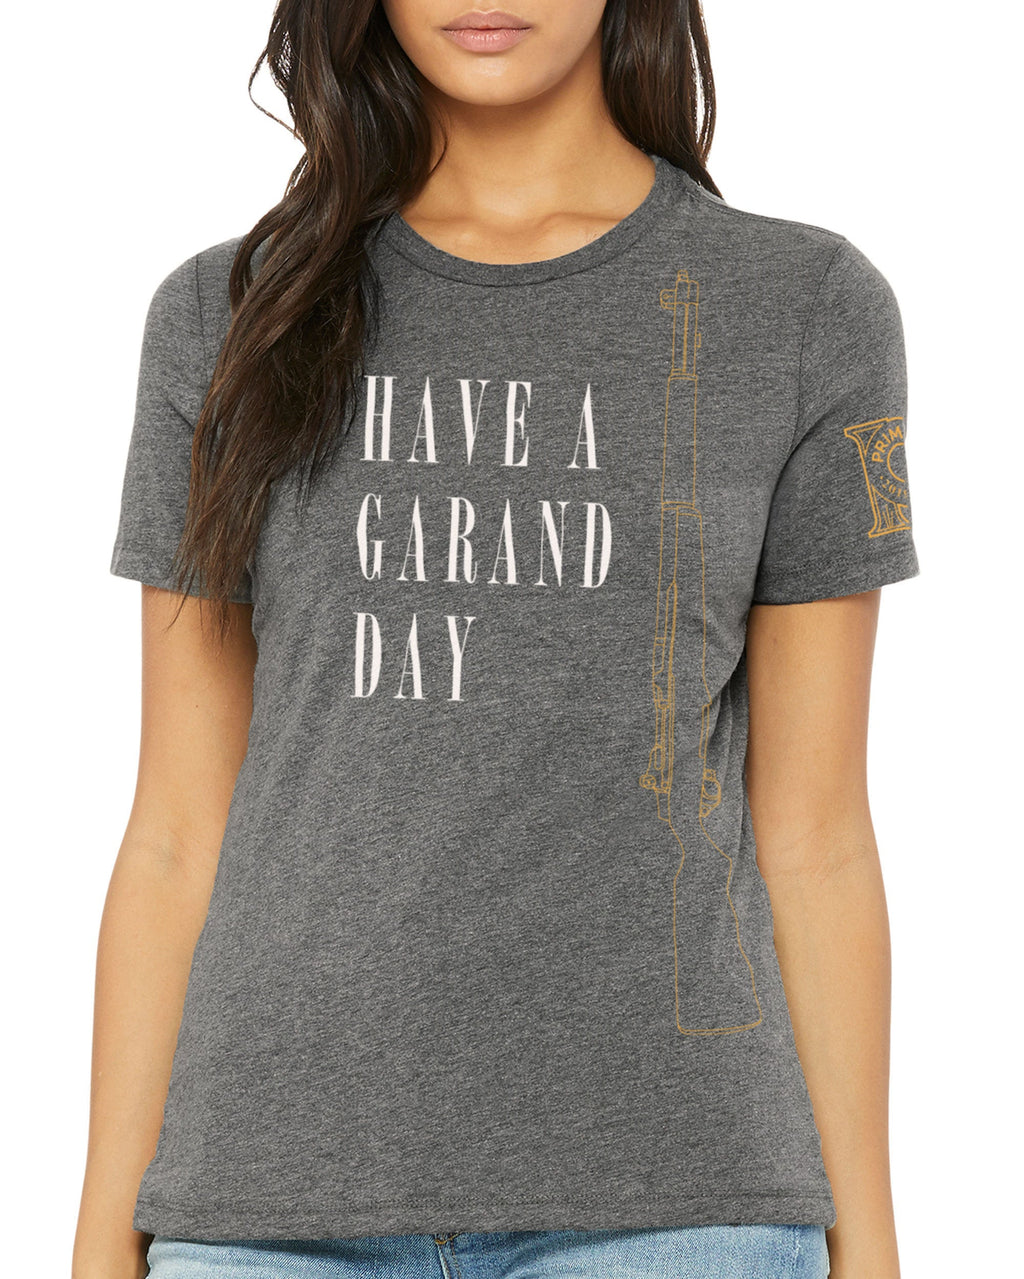 Women's Crew Neck Tee - Have a Garand Day